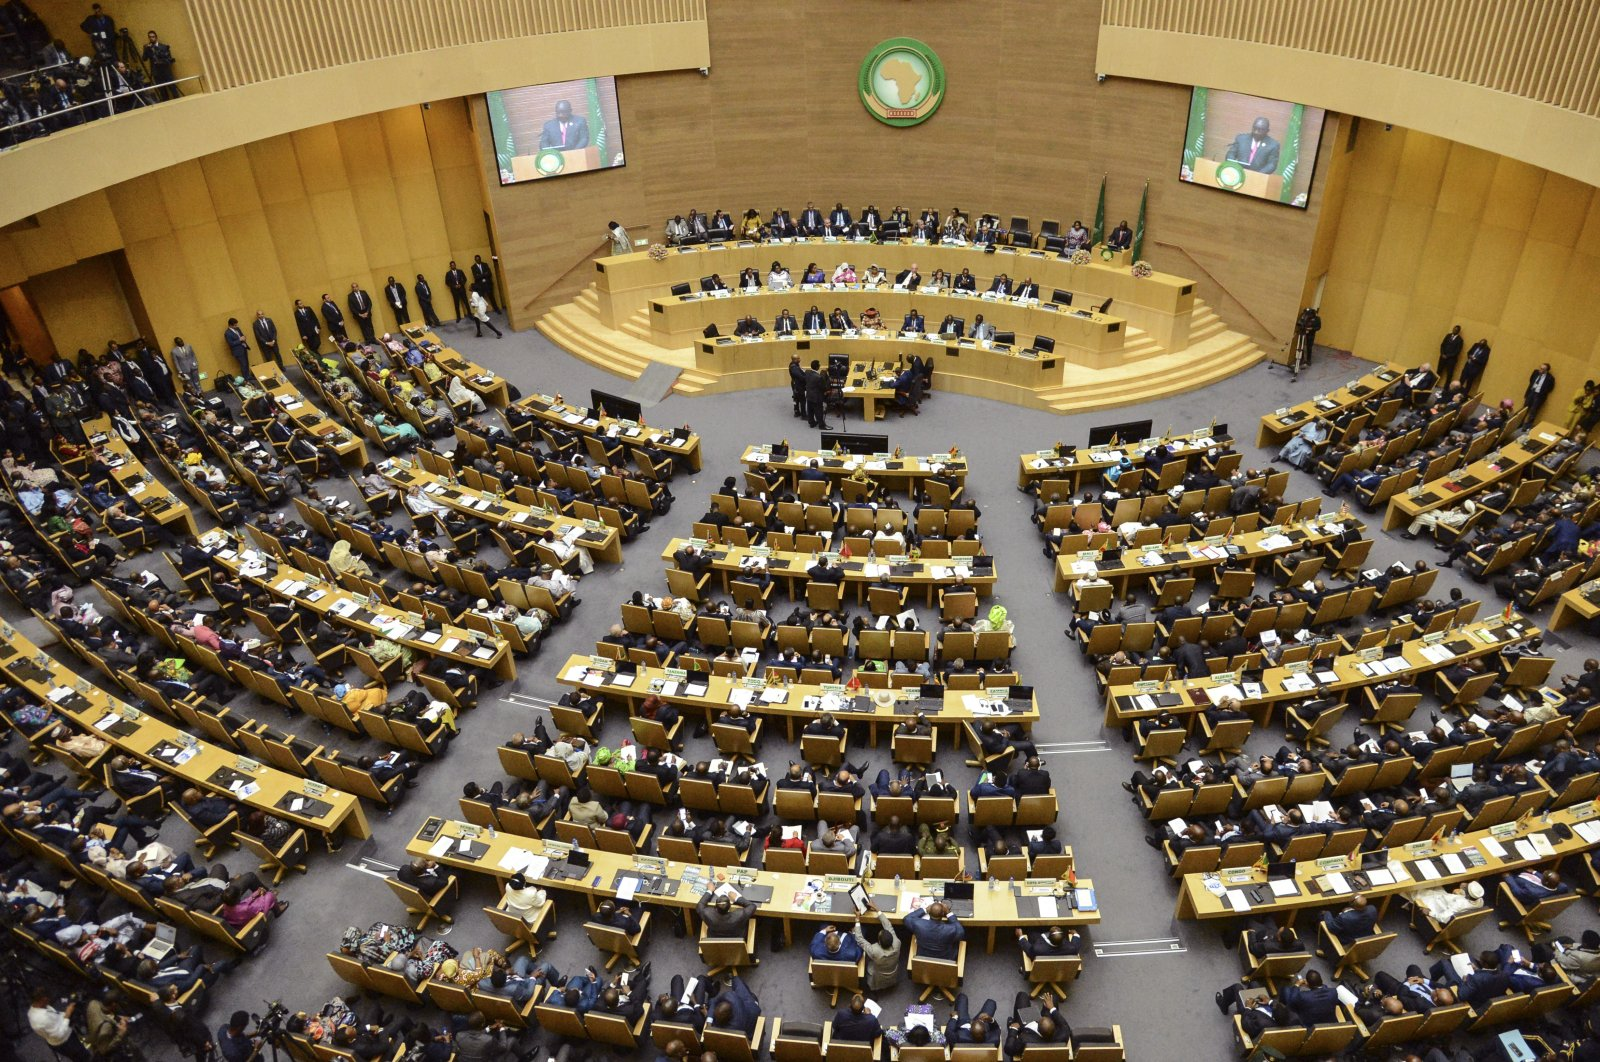 Delegates attend the opening session of the 33rd African Union (AU) Summit at the AU headquarters in Addis Ababa, Ethiopia Sunday, Feb. 9, 2020. (AP Photo)